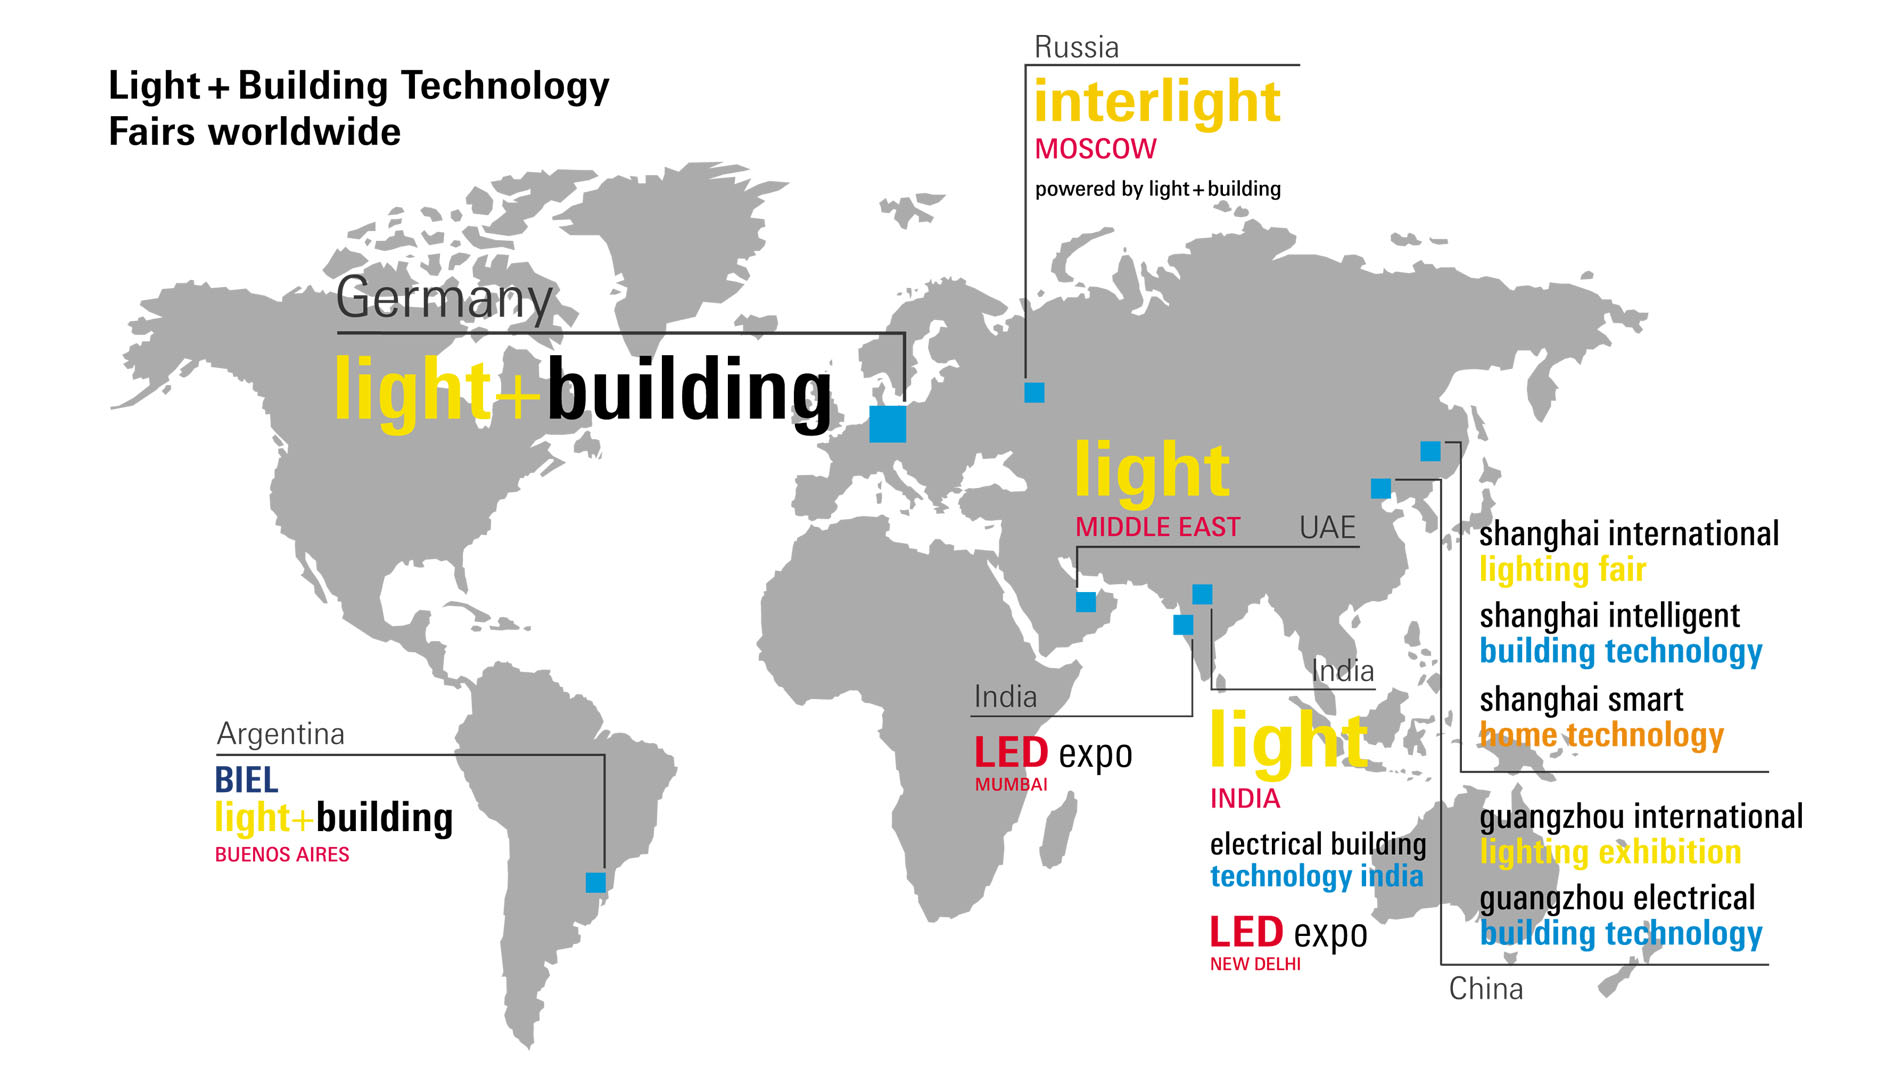 Light + Building Technology Fairs worldwide